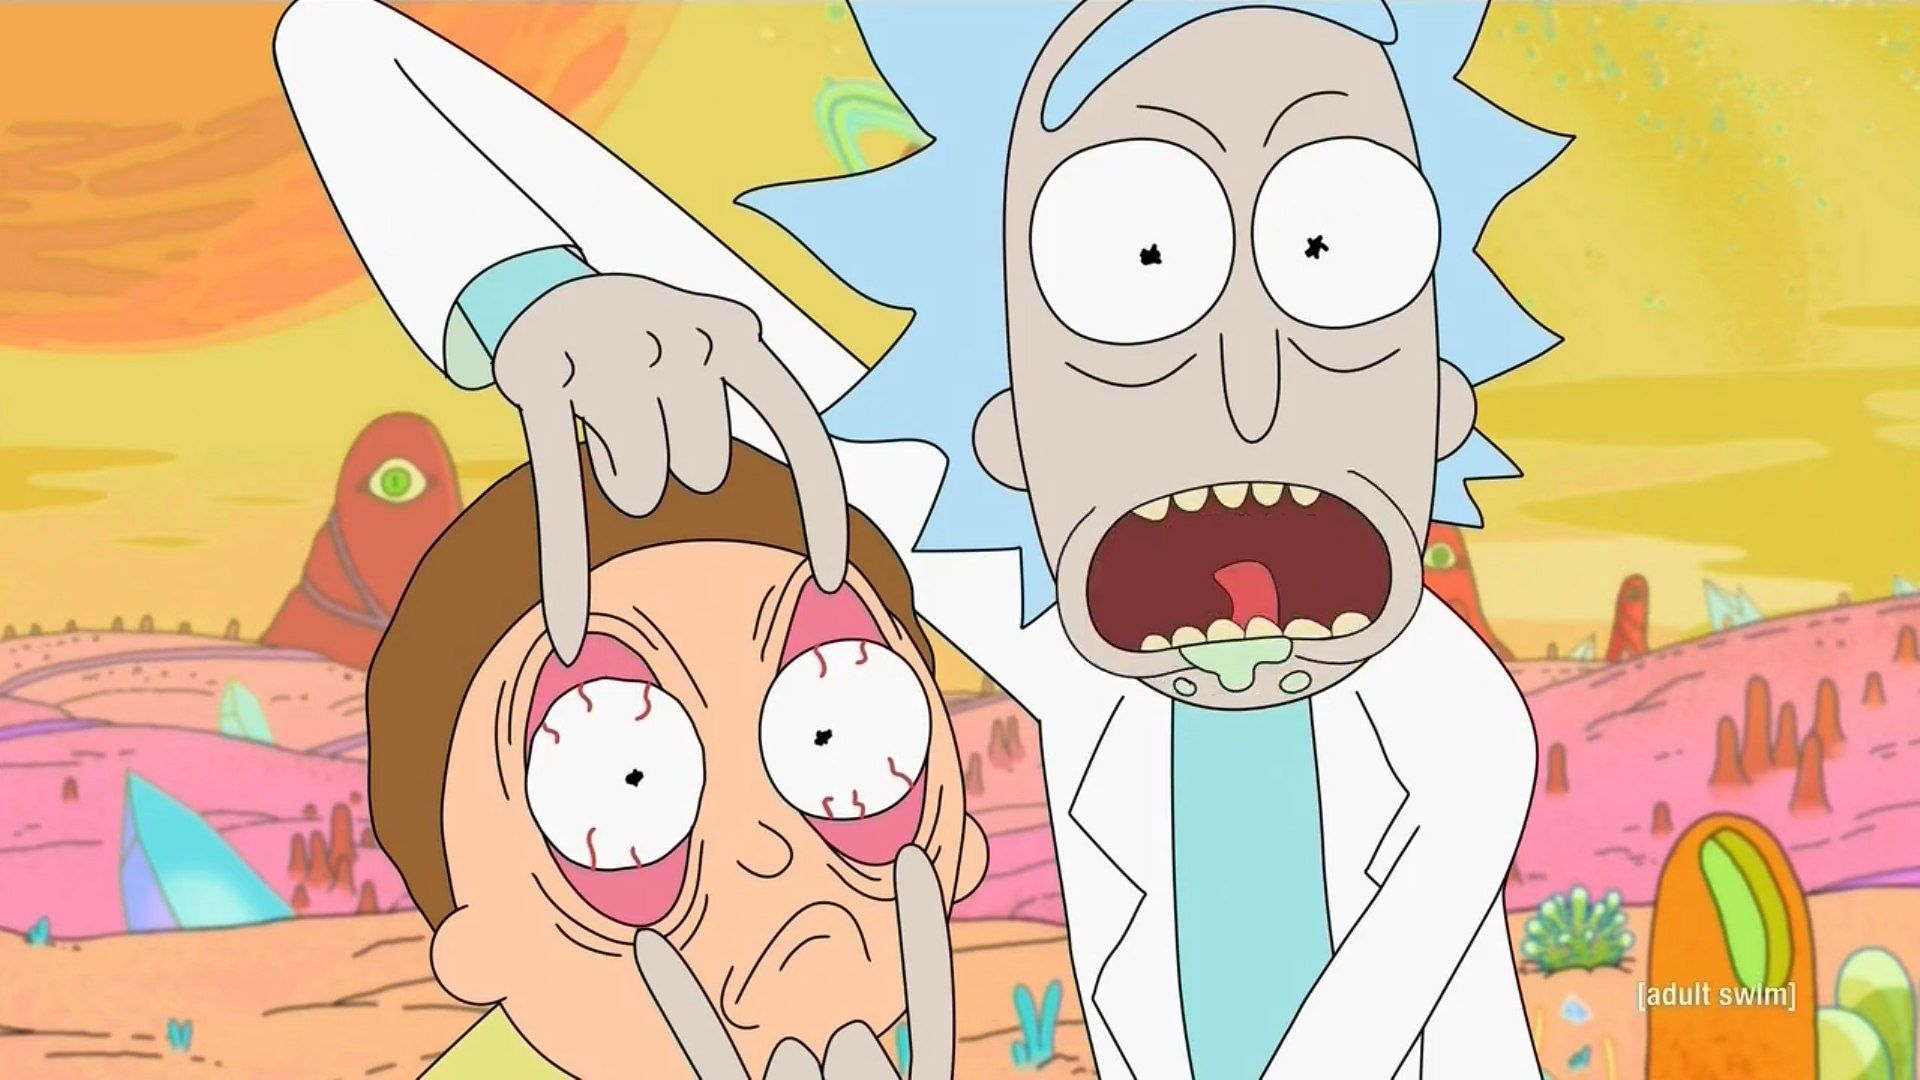 """The Philosophy of Absurdism in """"Rick and Morty"""""""